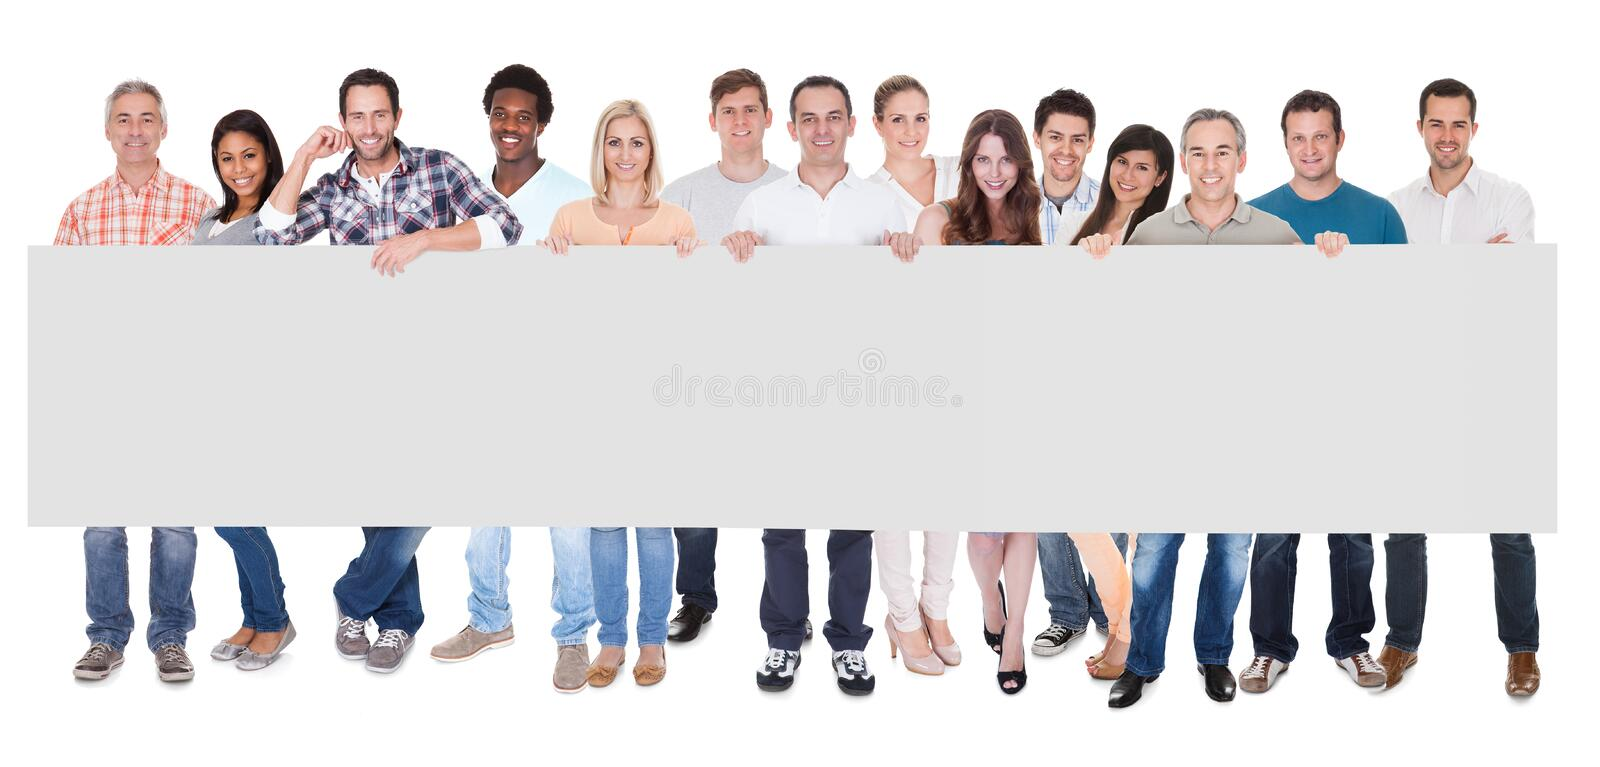 Group of business people with a blank banner stock photo